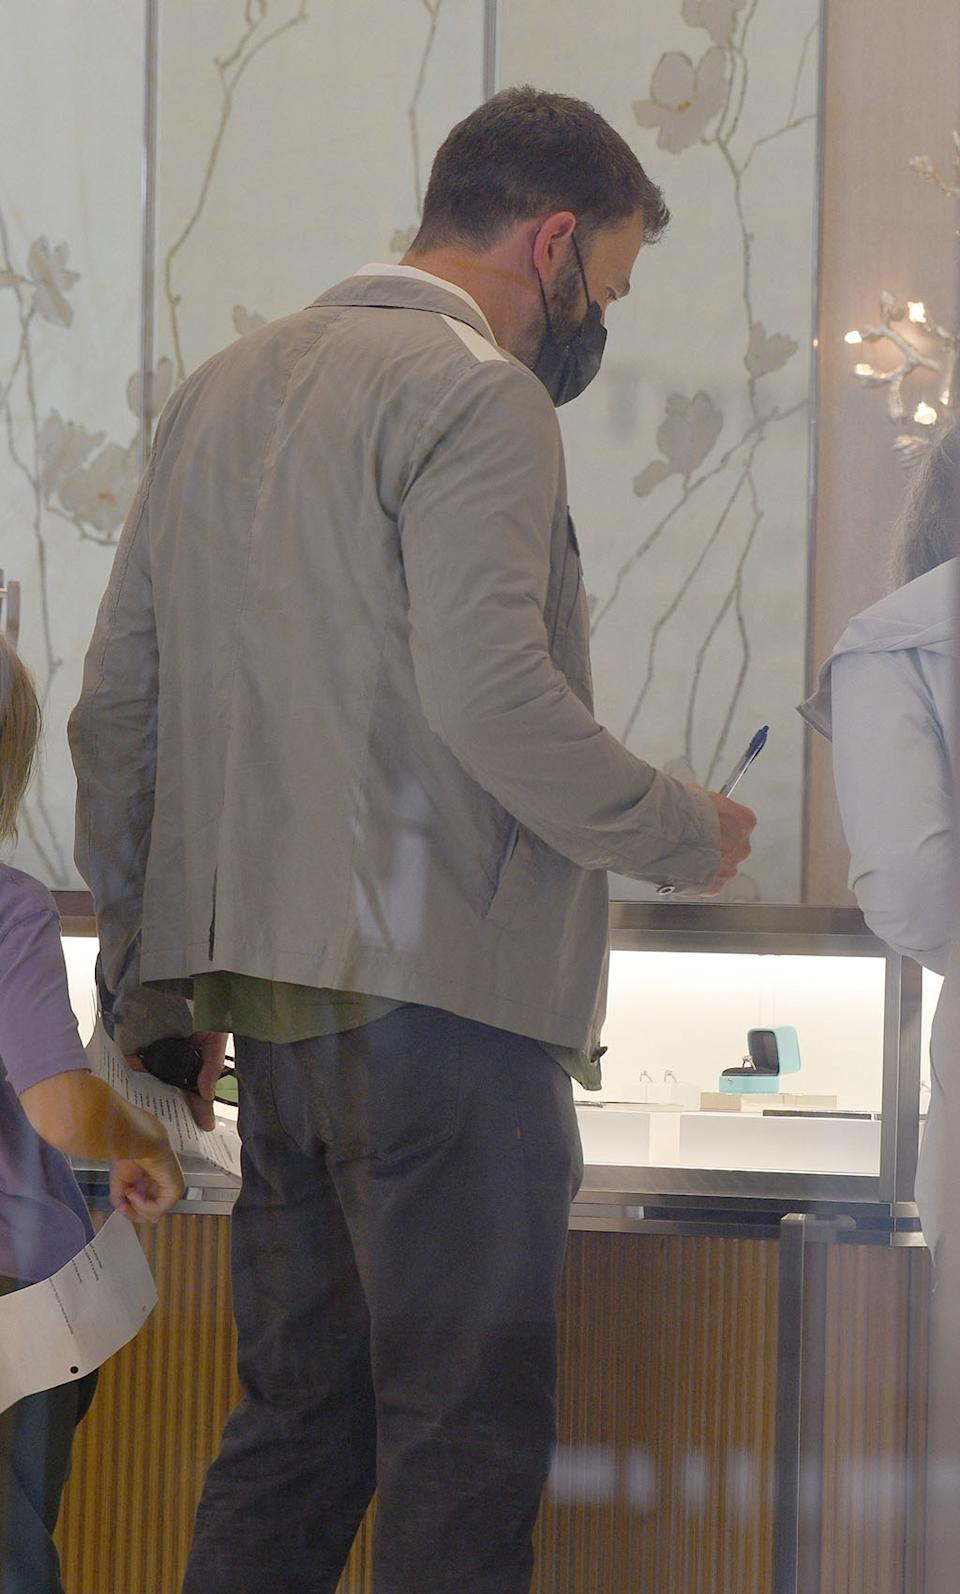 Ben Affleck supposedly browses engagement rings at Tifanny & Co. with his mom as his relationship with Jennifer Lopez heats up.